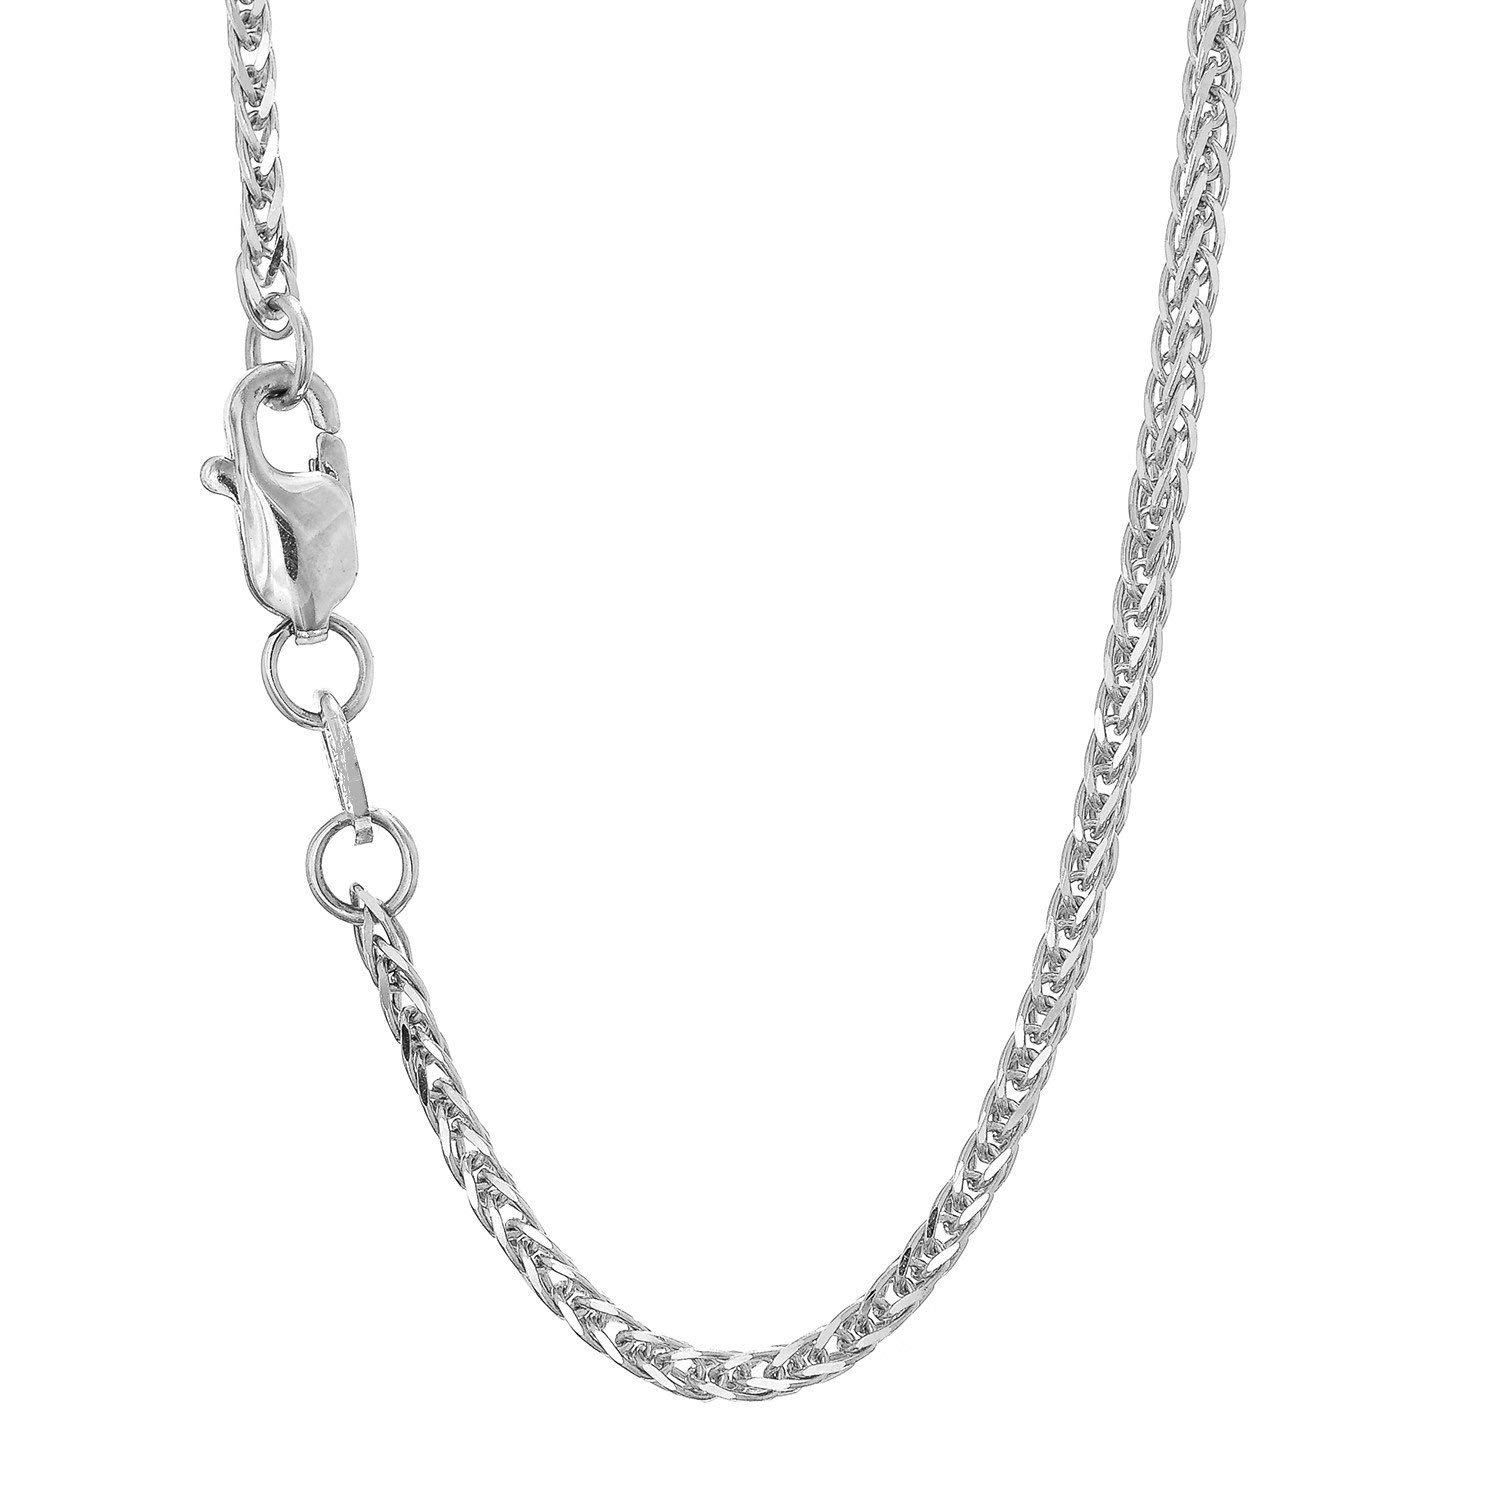 14K Yellow or White Gold 1.80mm Shiny Square Wheat Chain Necklace for Pendants and Charms with Lobster-Claw Clasp (16'' 18'' or 20 inch)